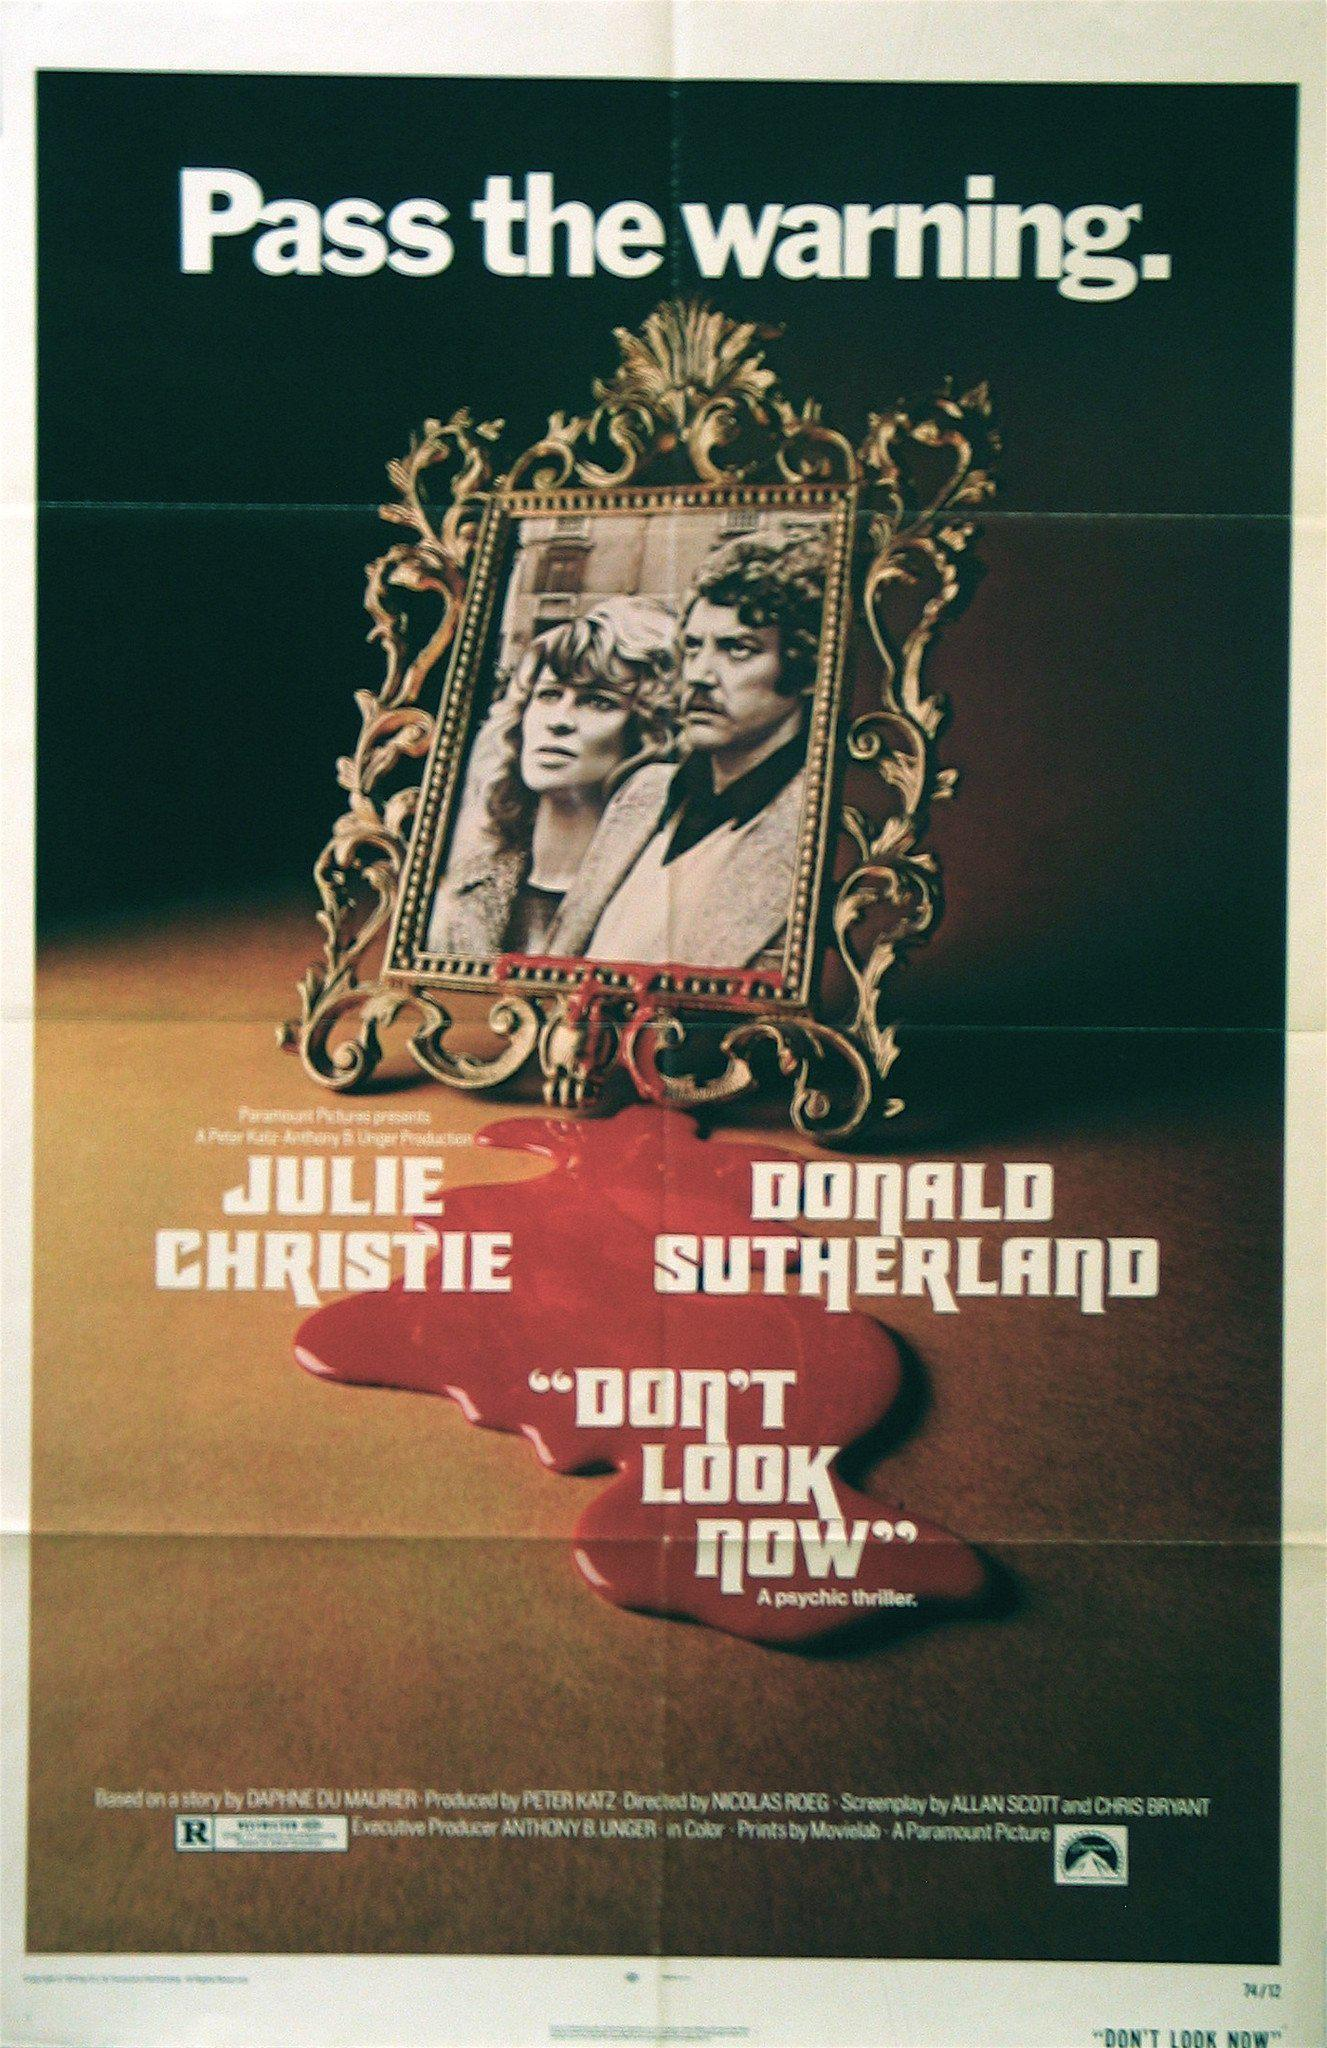 Don't Look Now (1973) - Directed By: Nicolas RoegStarring: Julie Christie, Donald Sutherland, Hilary Mason, Clelia Matania, Massimo SeratoRated: RRun Time: 1h 50mTMM Score: 4 StarsStrengths: Direction, ActingWeakness: Doesn't Connect the Dots